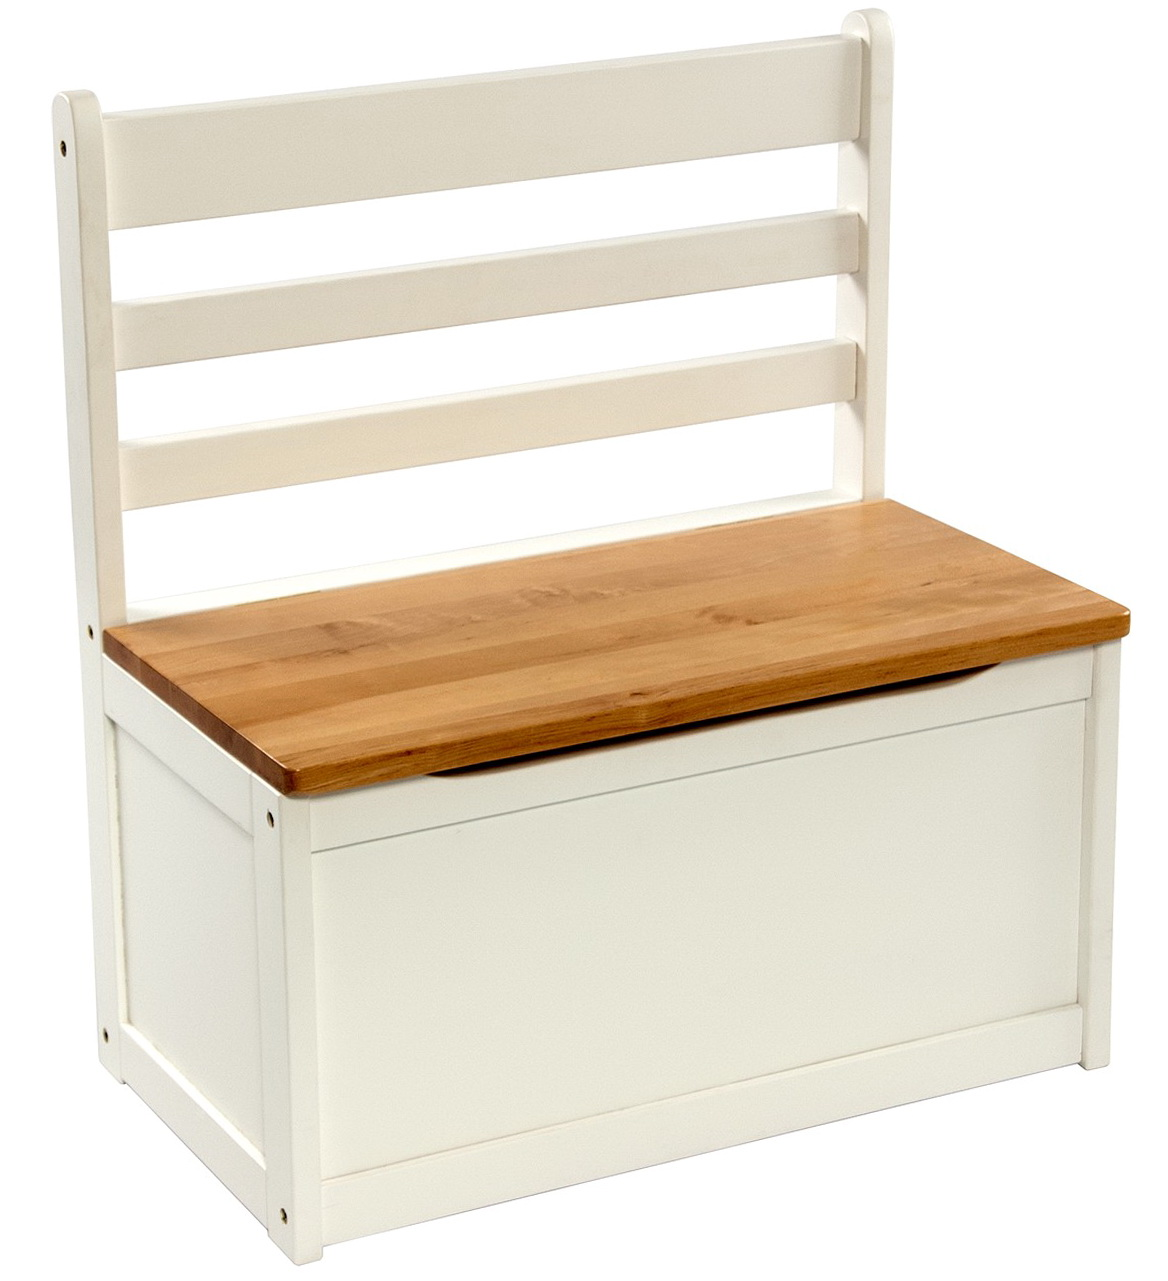 Wooden Toy Chest Bench Home Design Ideas